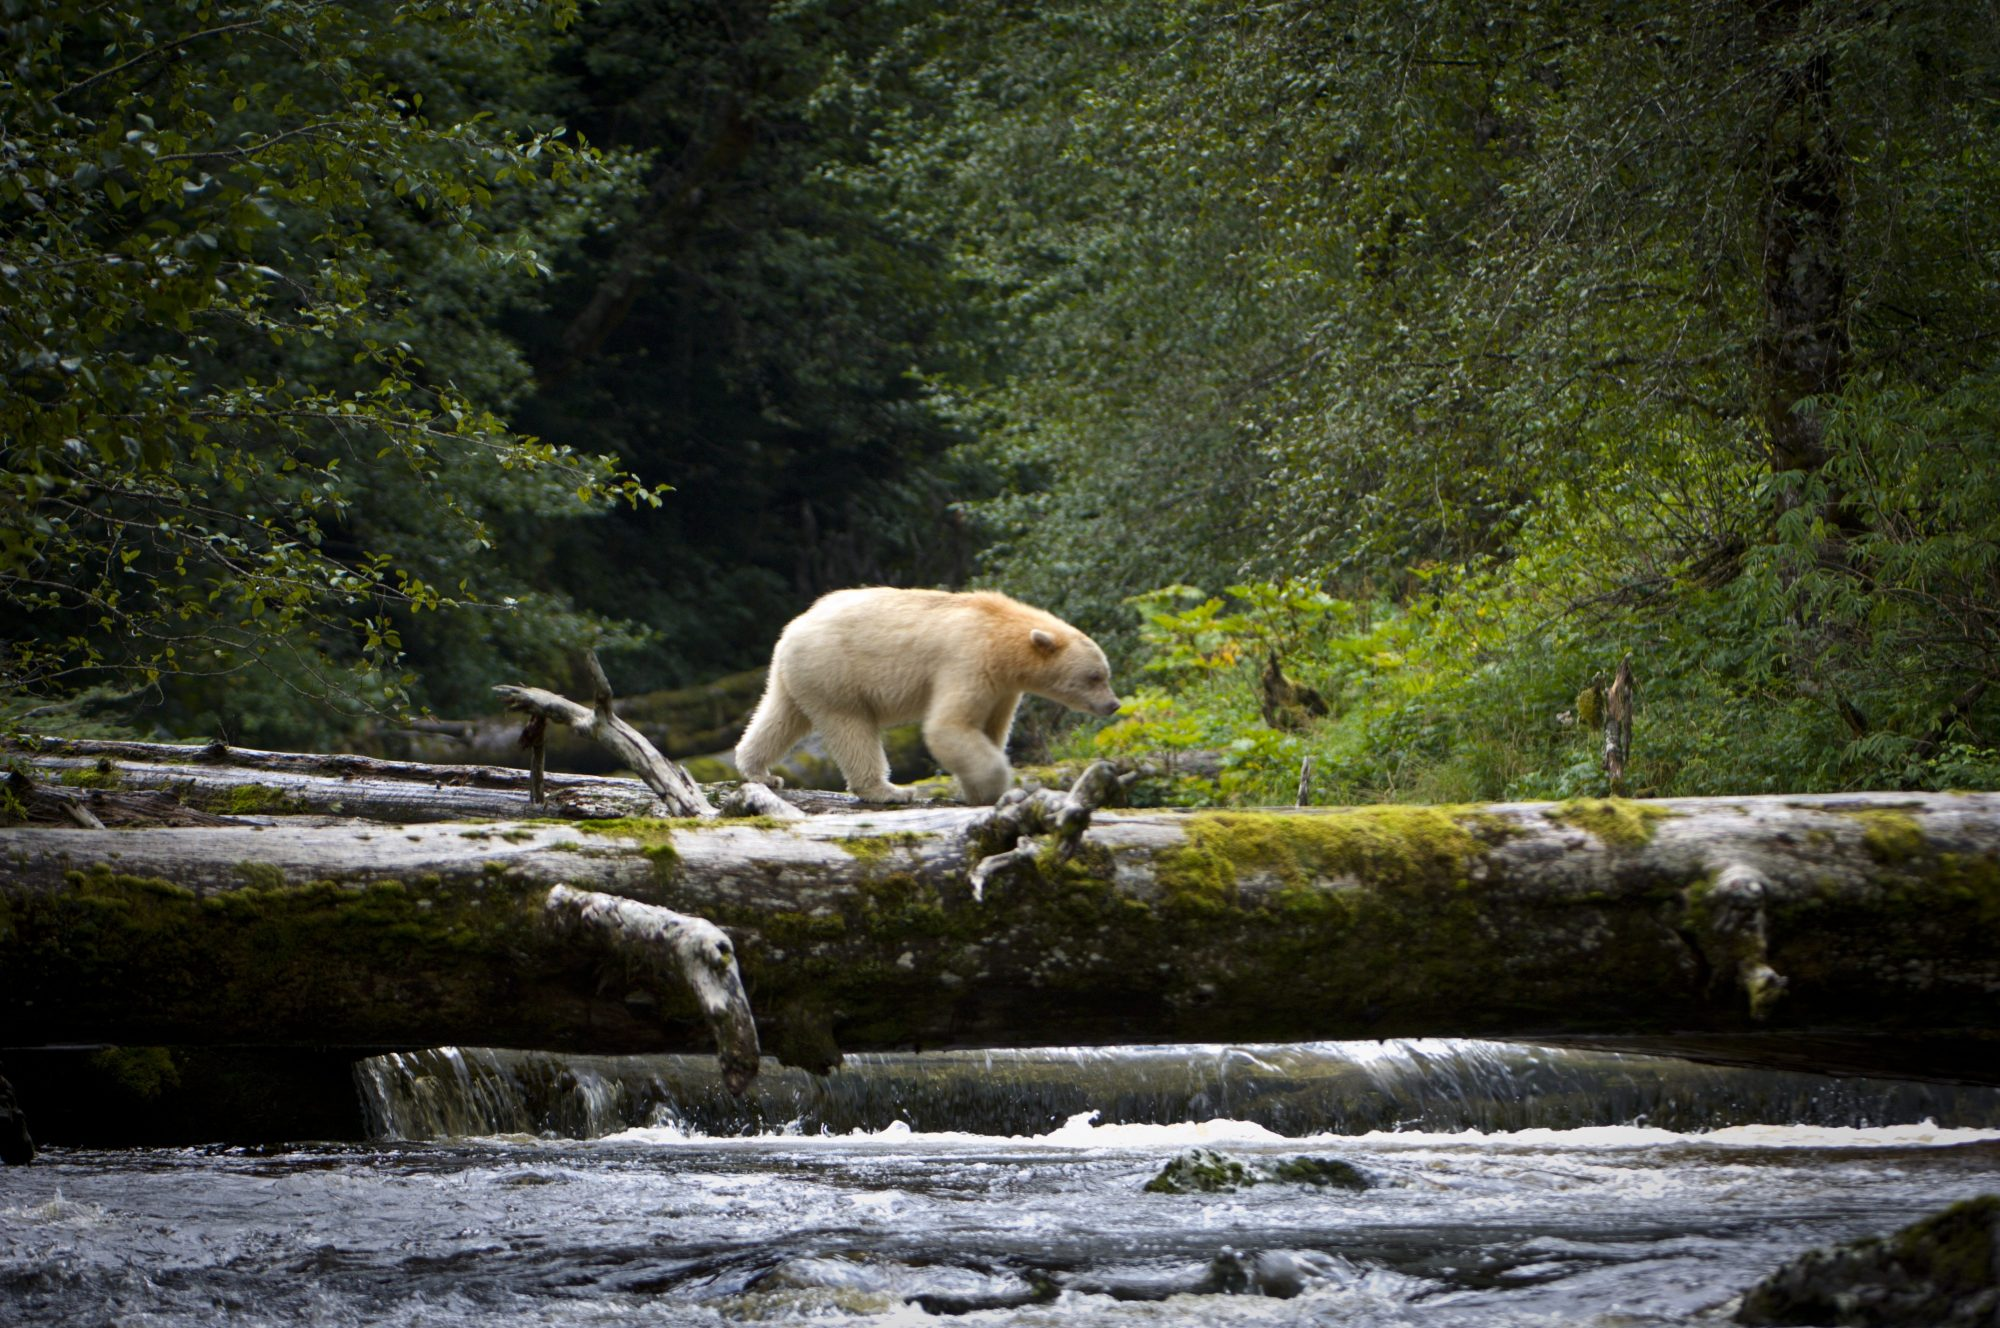 BRITISH COLUMBIA, CANADA - UNDATED: *** EXCLUSIVE *** Adult Spirit Bear or Kermode Bear (Ursus americanus kermodei) crossing fallen log over a stream on Gribbell Island, Great Bear Rainforest in British Columbia, Canada. It is startling enough to come face to face with a bear in the wild, but to then discover that it is an incredibly unusual white ?Spirit Bear? makes it an exceedingly special encounter. Lucky wildlife photographer and writer Nick Garbutt got within five metres with this spirit bear in British Columbia in Canada. After some sniffing, posturing and a little thought the bear decided that Nick was nothing to be concerned about and went back to fishing for salmon, allowing Nick to get these superb shots. The Spirit Bear, a distinct and rare genetic variant of the more common and widely distributed Black Bear, is an extraordinary sight, appearing to glow ?ghost-like? in the dark, primordial forests it inhabits. In the Great Bear Rainforest of British Colombia, there is only one ?Spirit Bear? for every 10 regular Black Bears, so Nick believes he encountered one of only around 300 in the world. PHOTOGRAPH BY www.nickgarbutt.com / BARCROFT MEDIA LTD UK Office, London. T +44 845 370 2233 W www.barcroftmedia.com USA Office, New York City. T +1 212 564 8159 W www.barcroftusa.com Indian Office, Delhi. T +91 114 653 2118 W www.barcroftindia.com Australasian & Pacific Rim Office, Melbourne. E info@barcroftpacific.com T +613 9510 3188 or +613 9510 0688 W www.barcroftpacific.com (Photo by www.nickgarbutt.com / Barcroft Media / Getty Images)